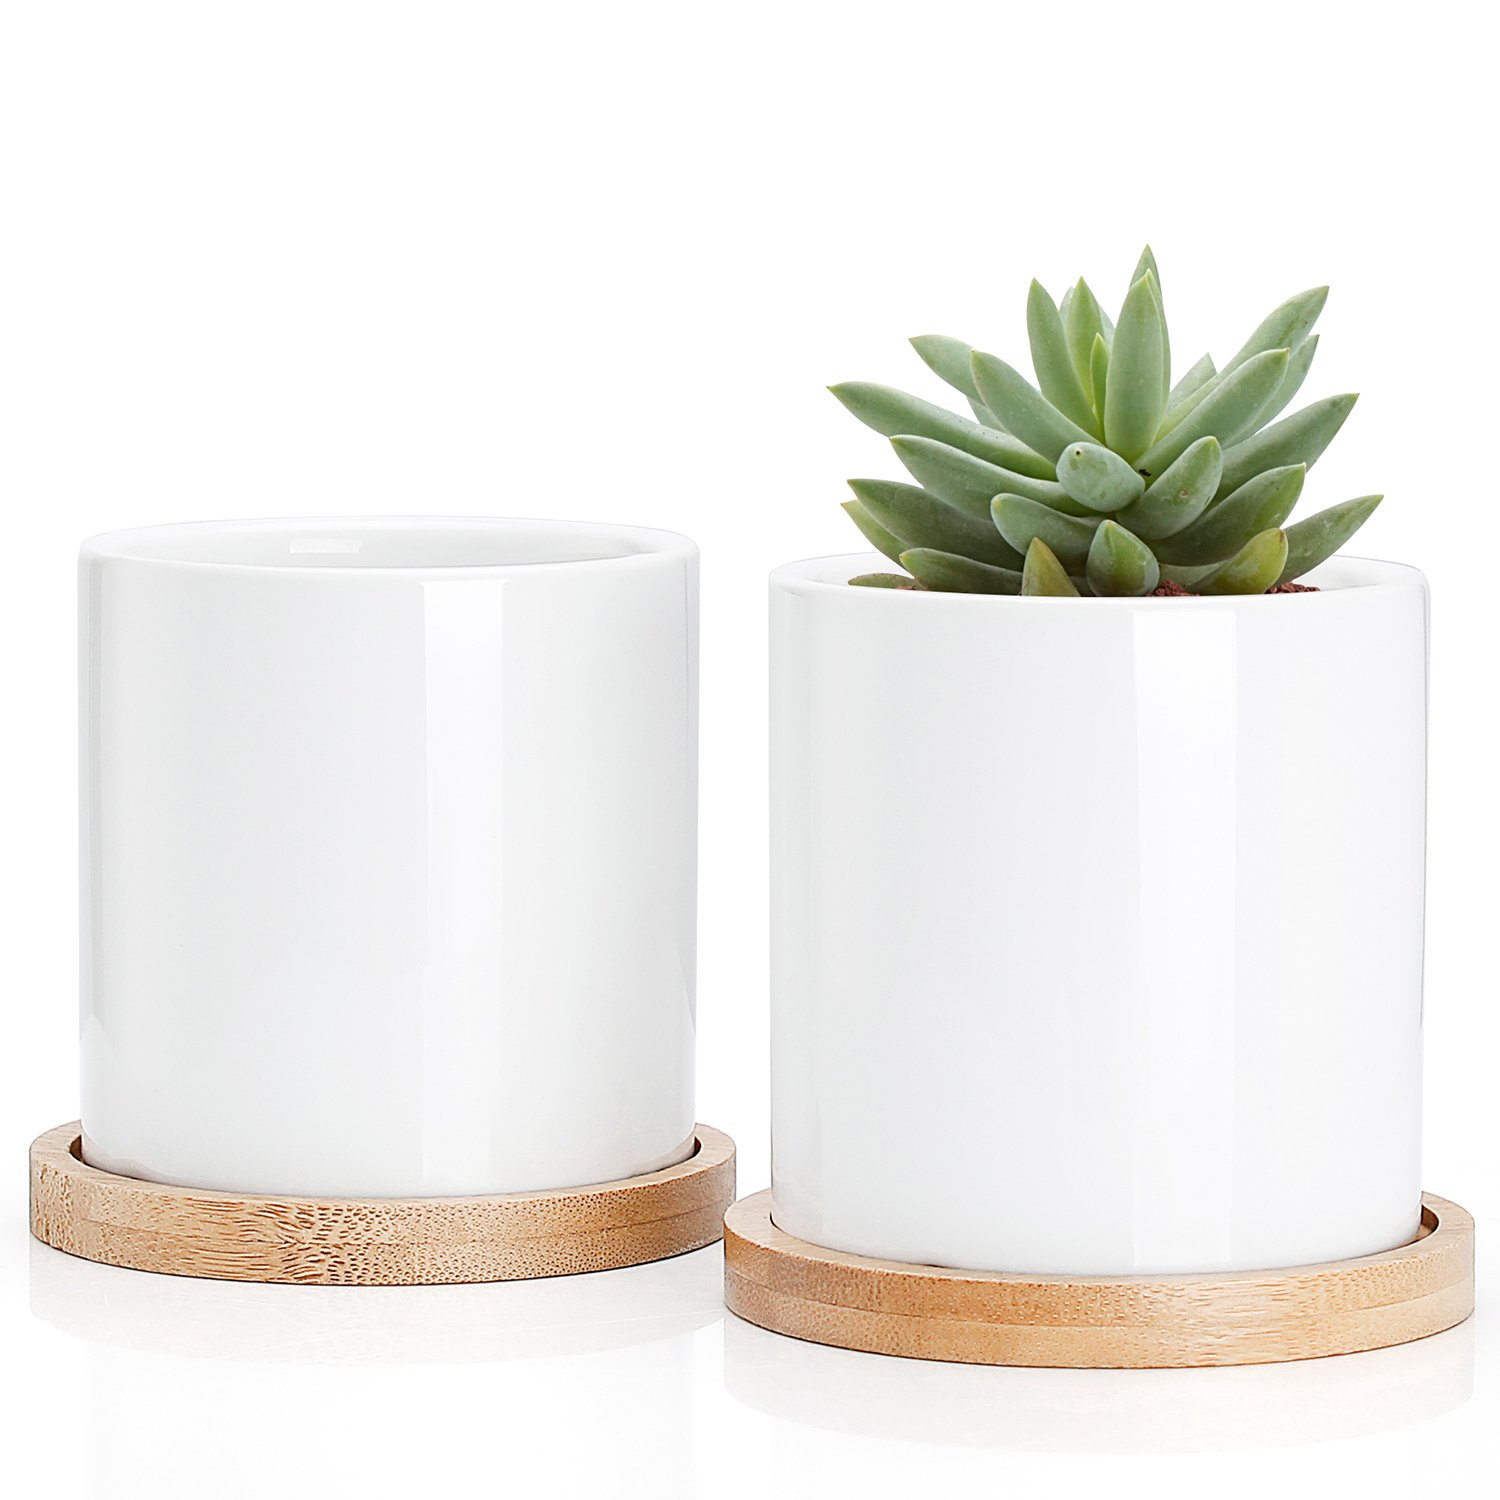 Greenaholics Succulent Plant Pots - 3 Inch Ceramic Cylindrical Containers, Small Cactus Planters, Flower Pots with Drainage Hole, Bamboo Tray, Set of 2, White by Greenaholics